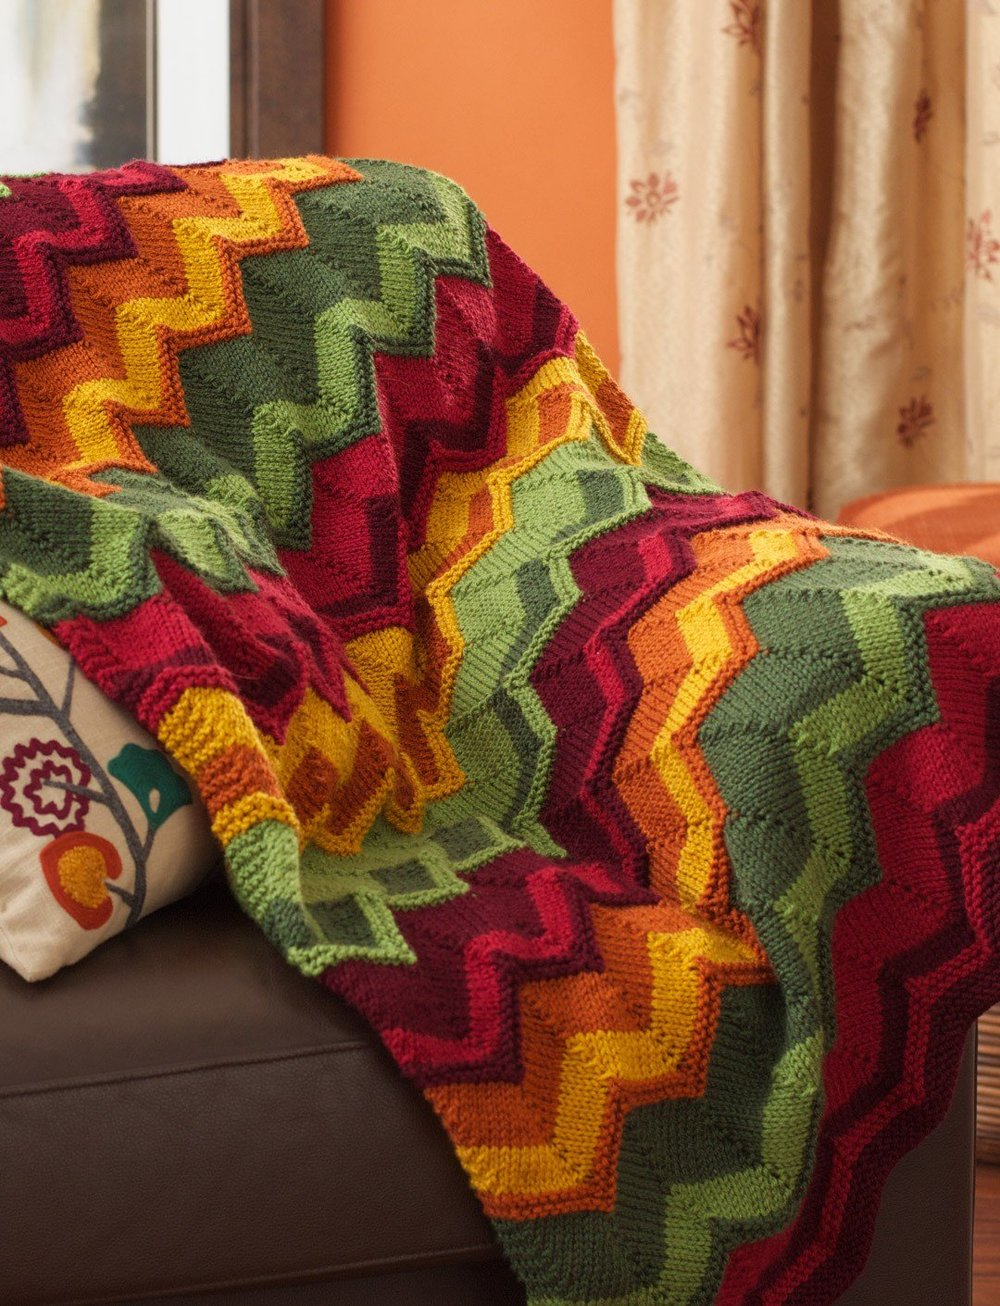 Thanksgiving Throw Knit Afghan Pattern Allfreeknitting Com